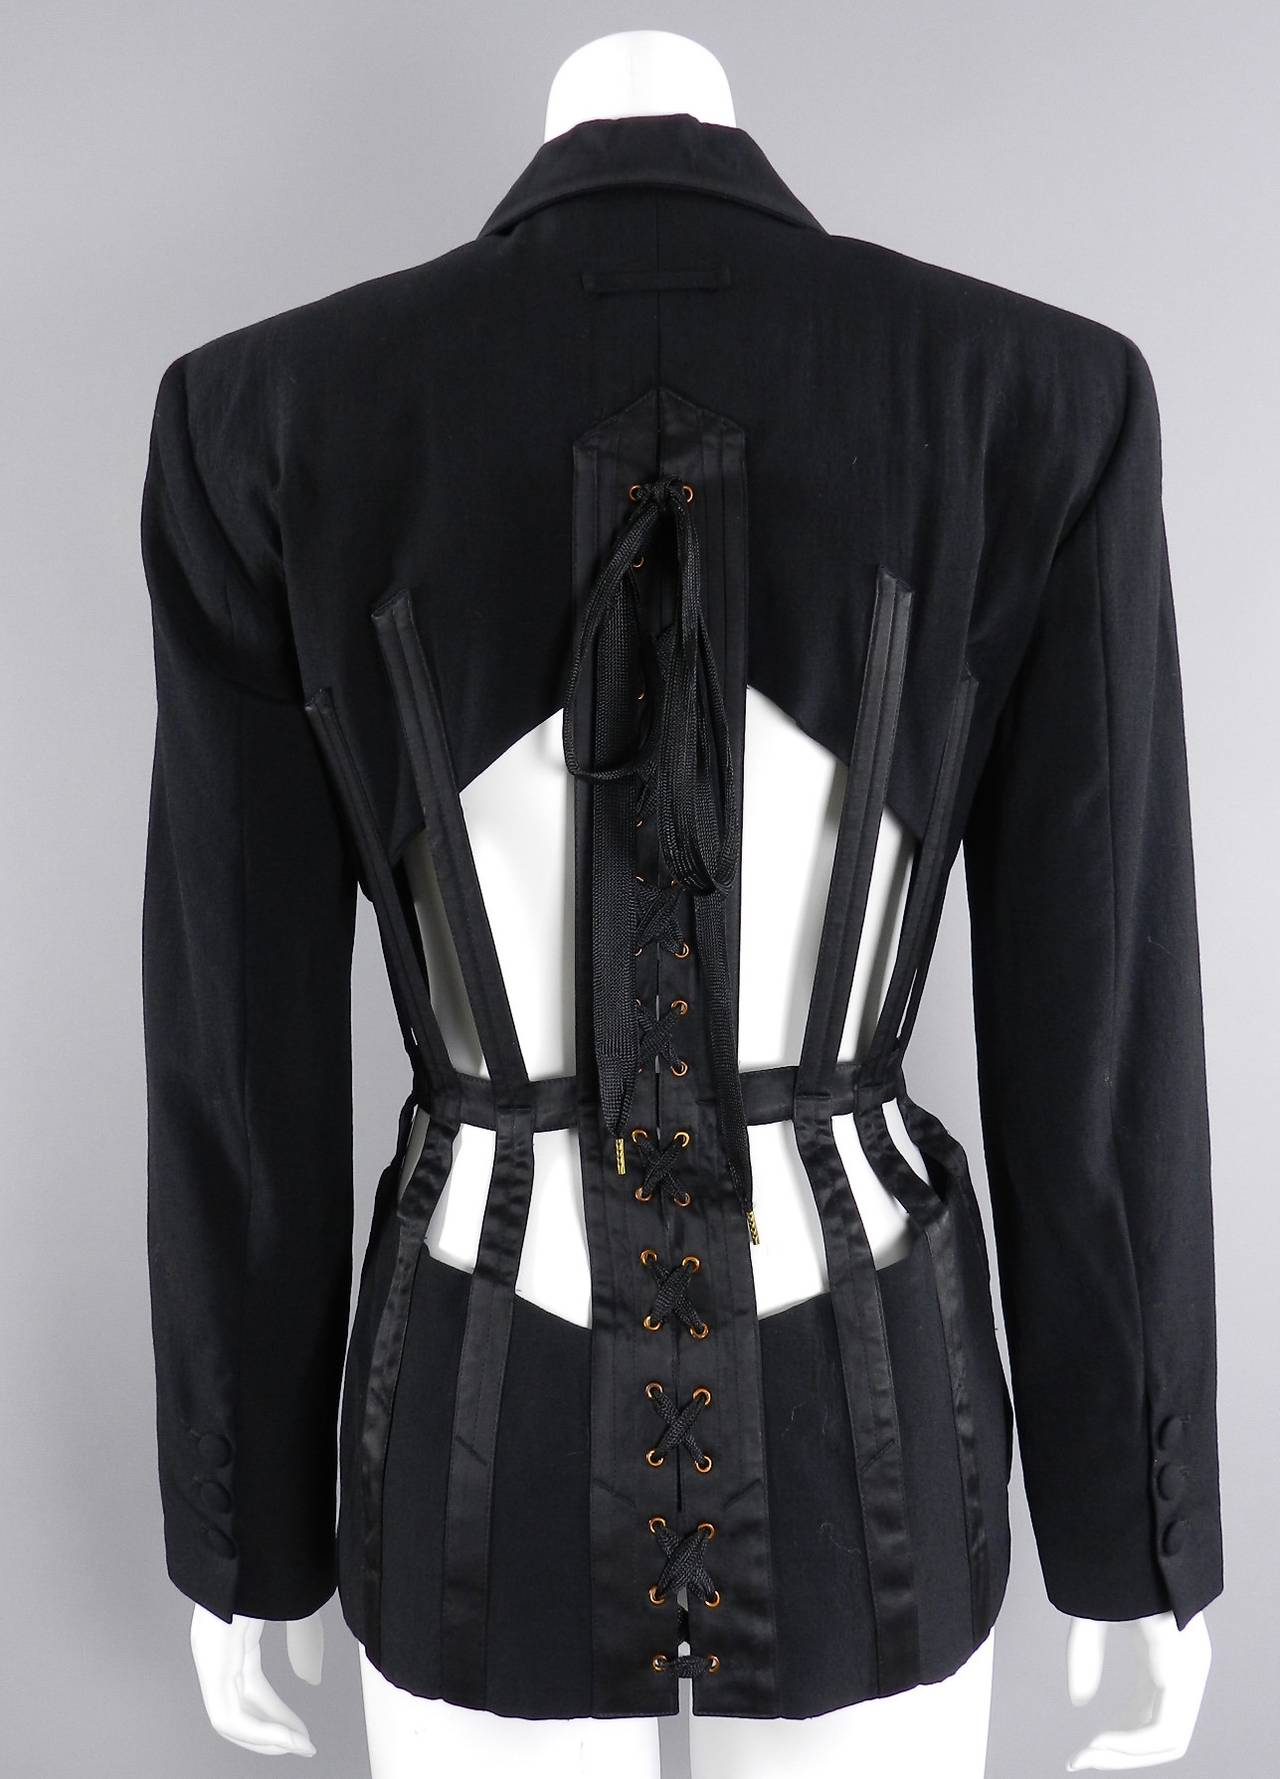 Jean Paul Gaultier Iconic 1989 Black Corset Cage Jacket 4